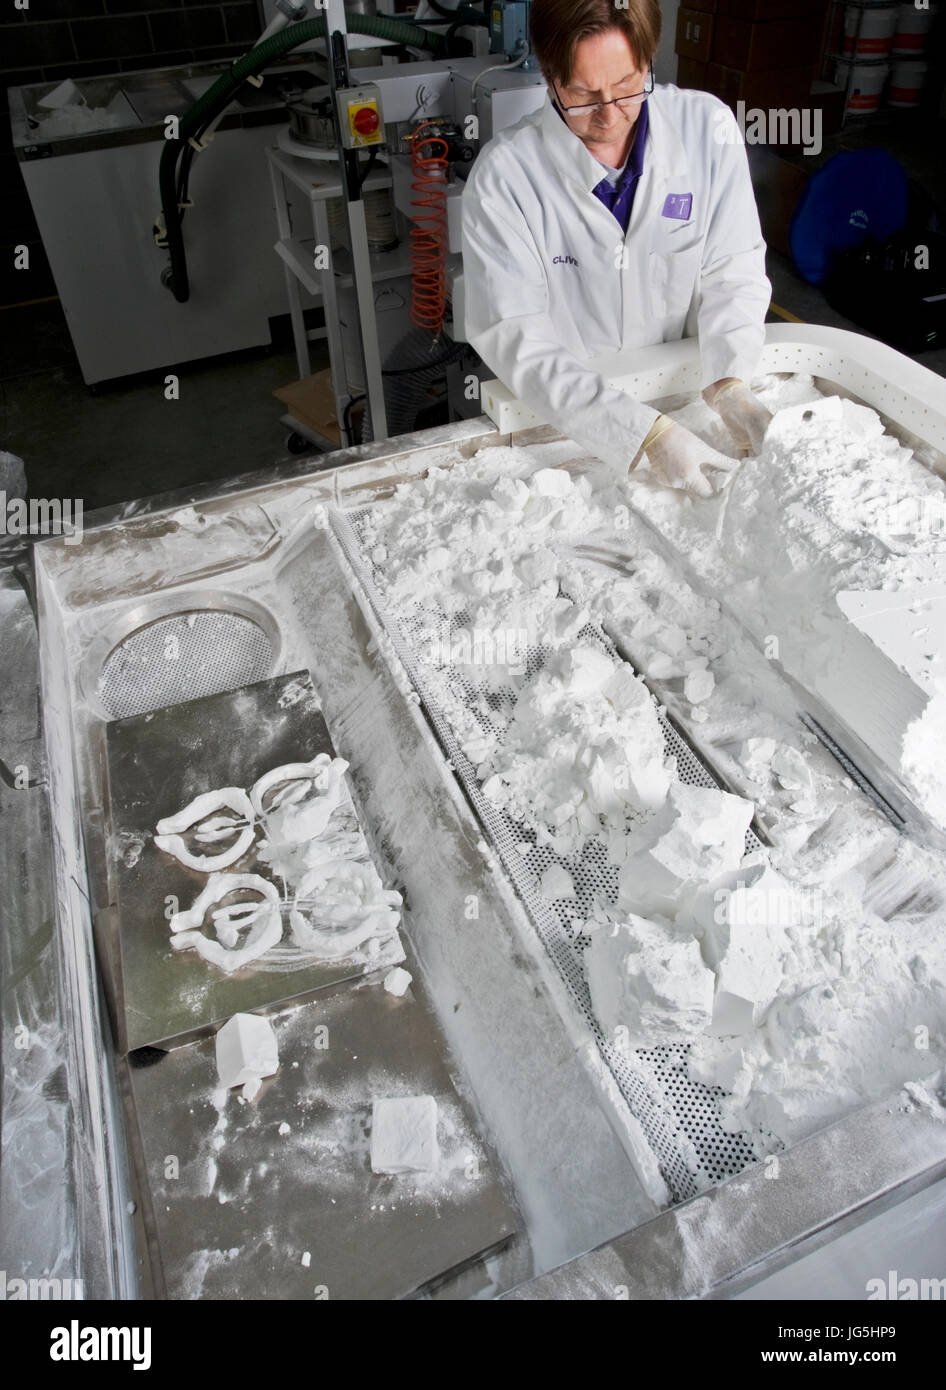 Unpolished prototype objects manufactured by the Selective Laser Sintering (SLS) process being released from the - Stock Image